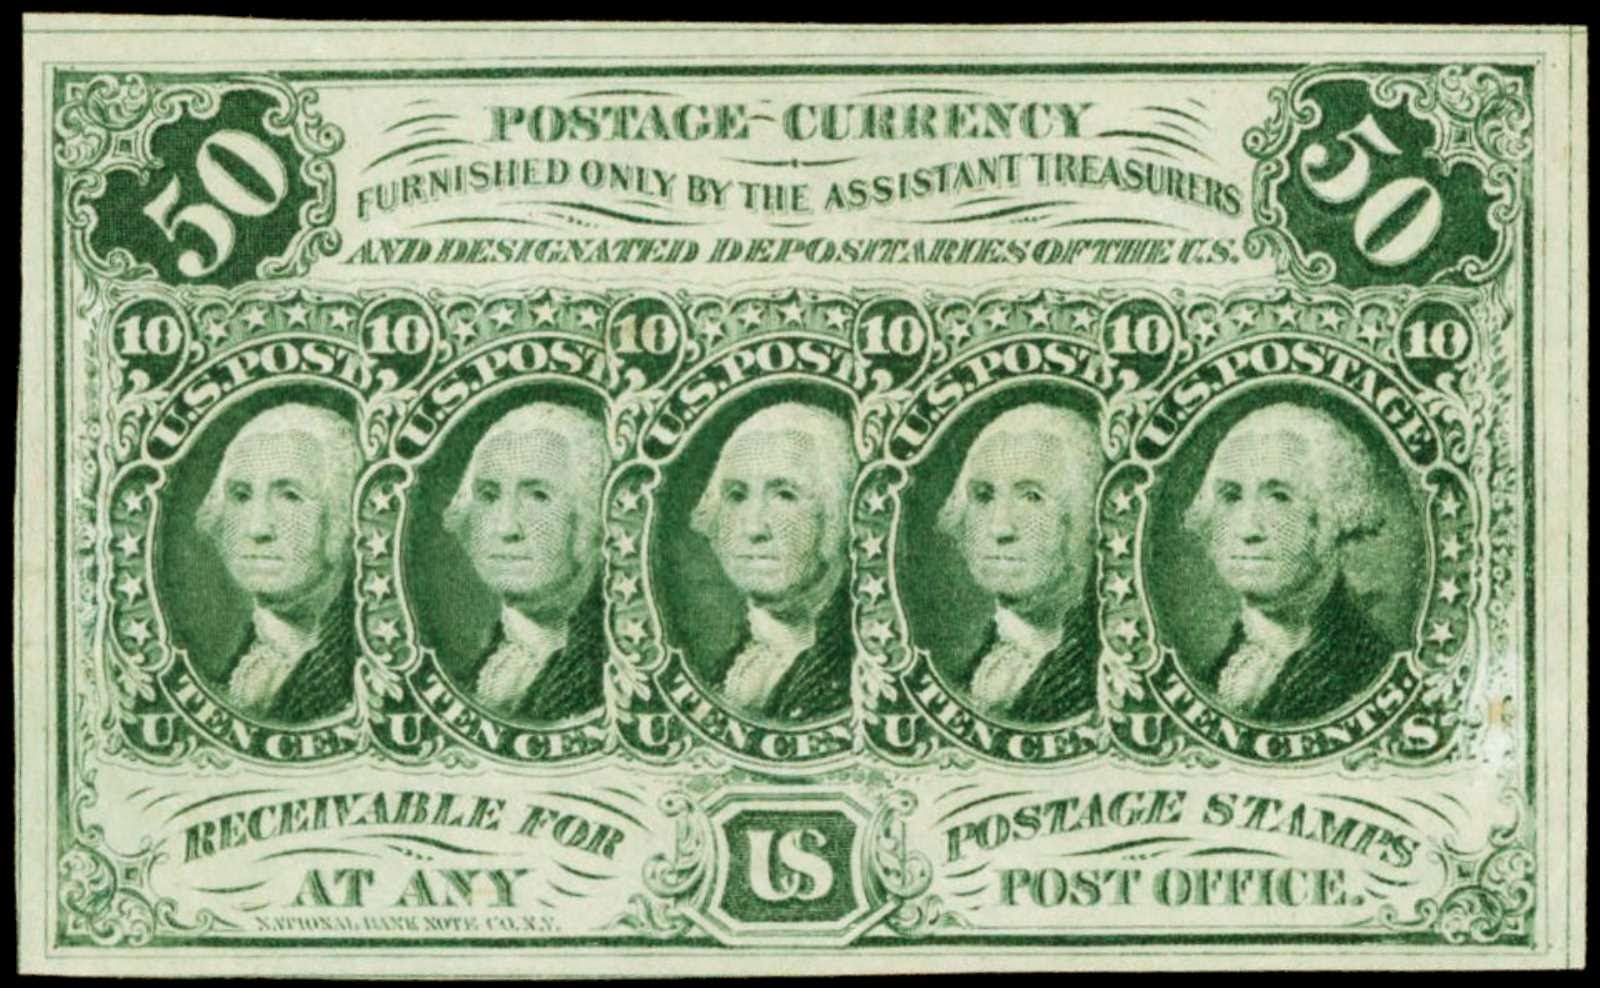 US Postage Currency Paper Money 50 Cents stamps